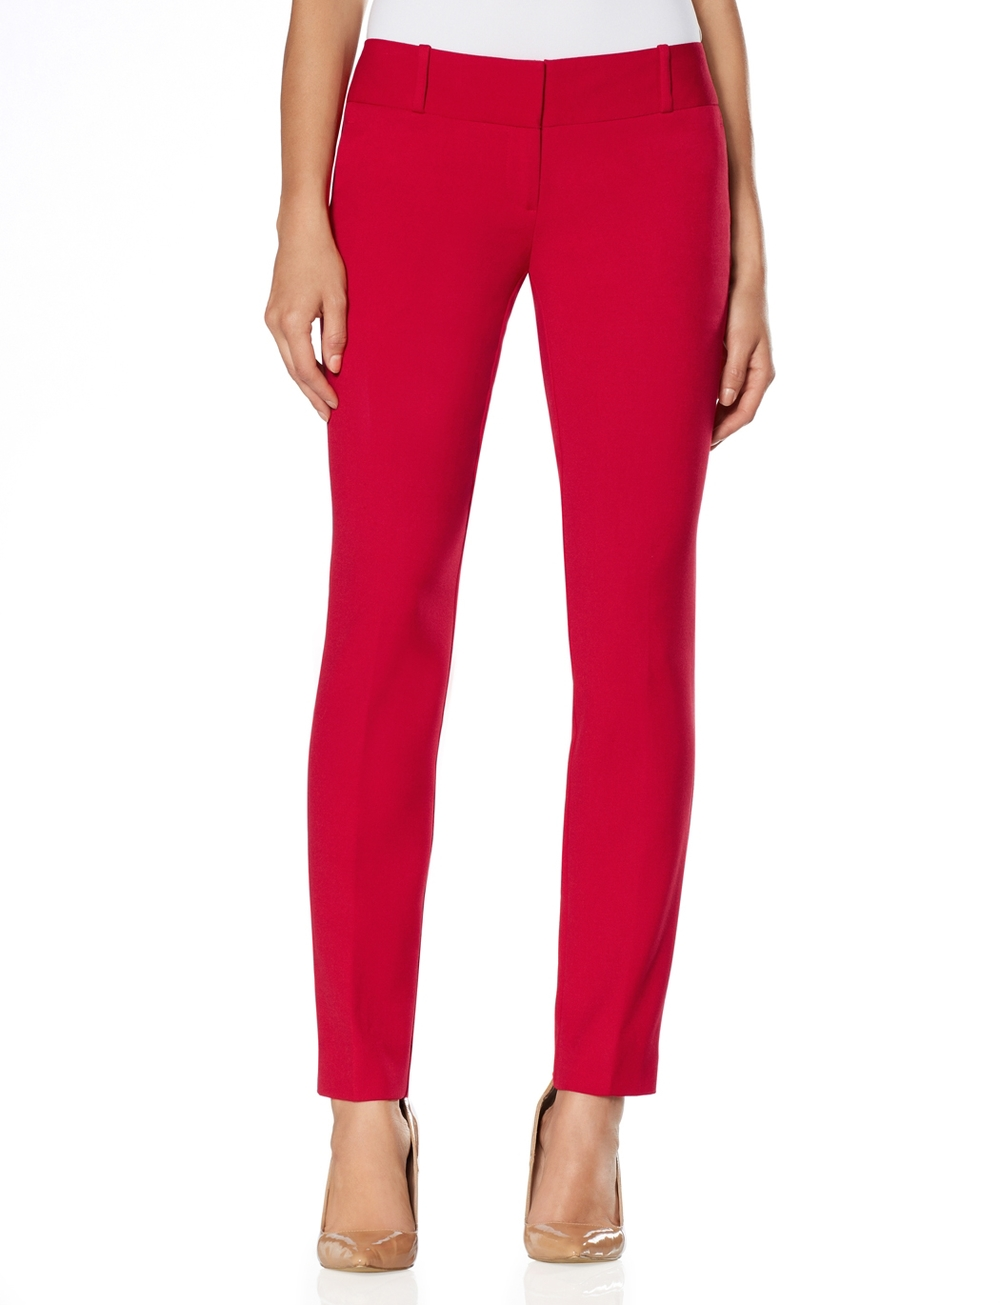 Sleek pencil pants. Also available in black. The Limited. Was: $64.90 Now: $38.94.